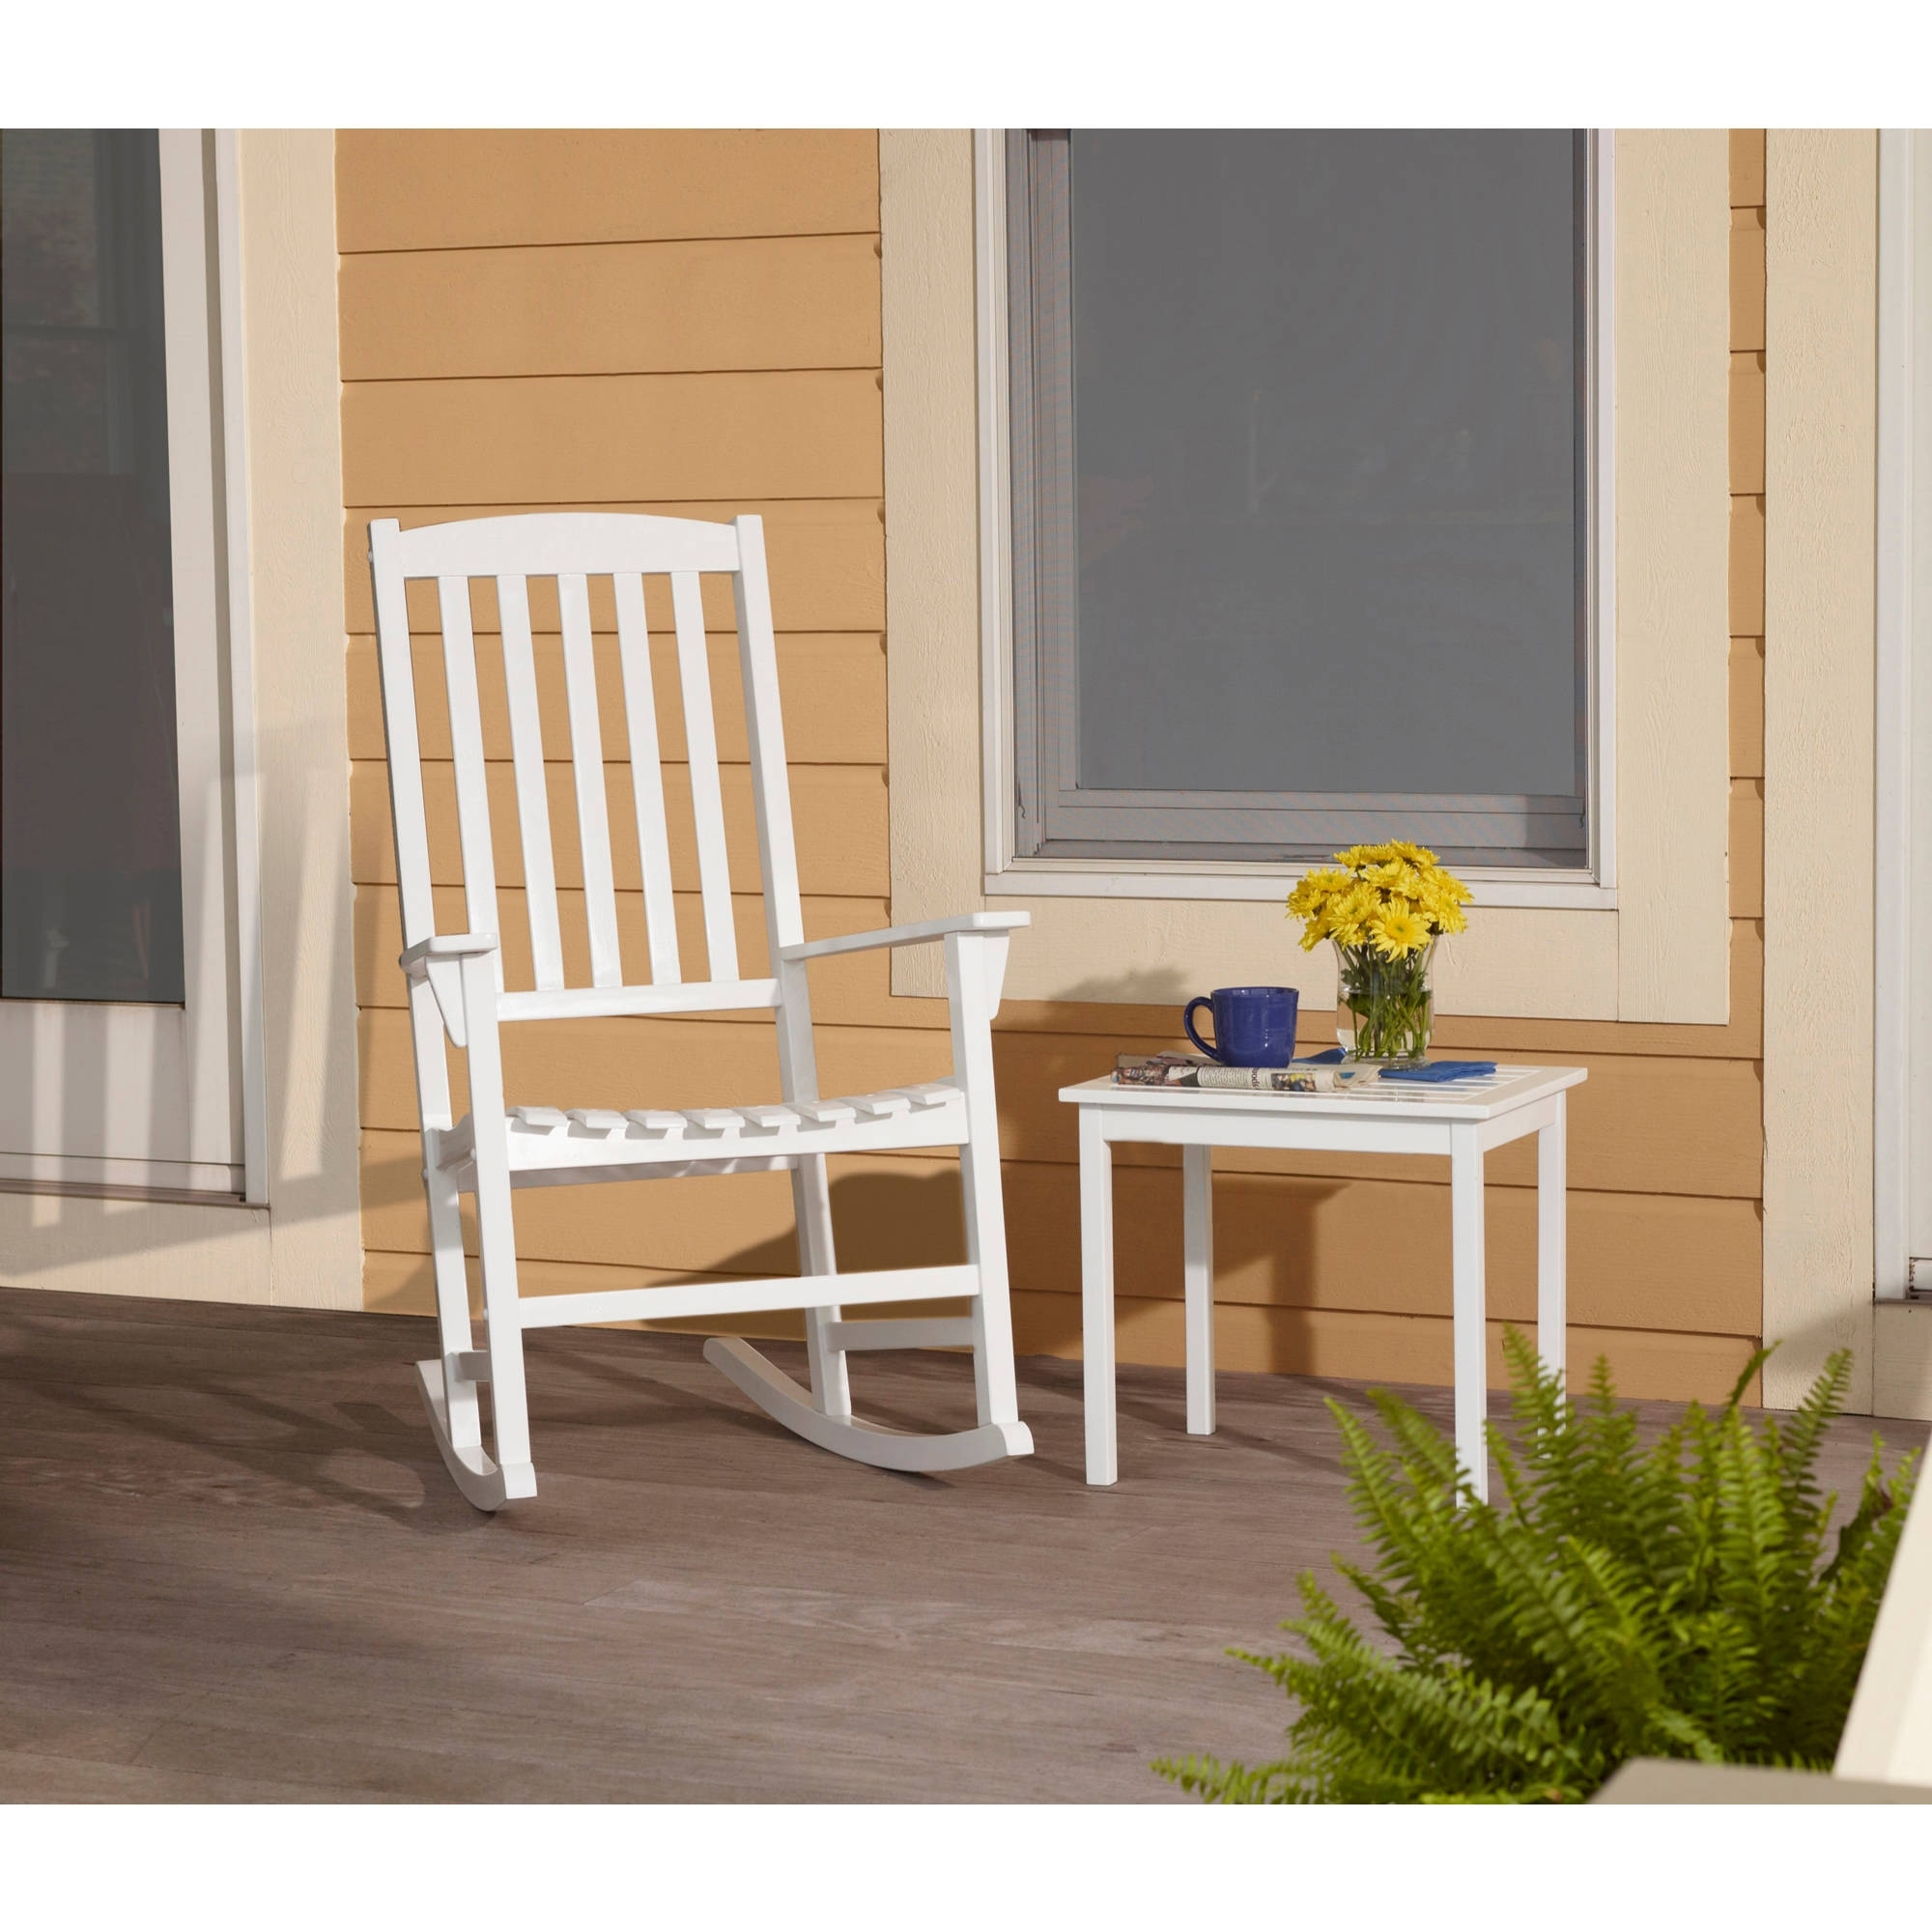 Mainstays Outdoor Rocking Chair, White – Walmart With Regard To Most Current White Patio Rocking Chairs (View 15 of 15)